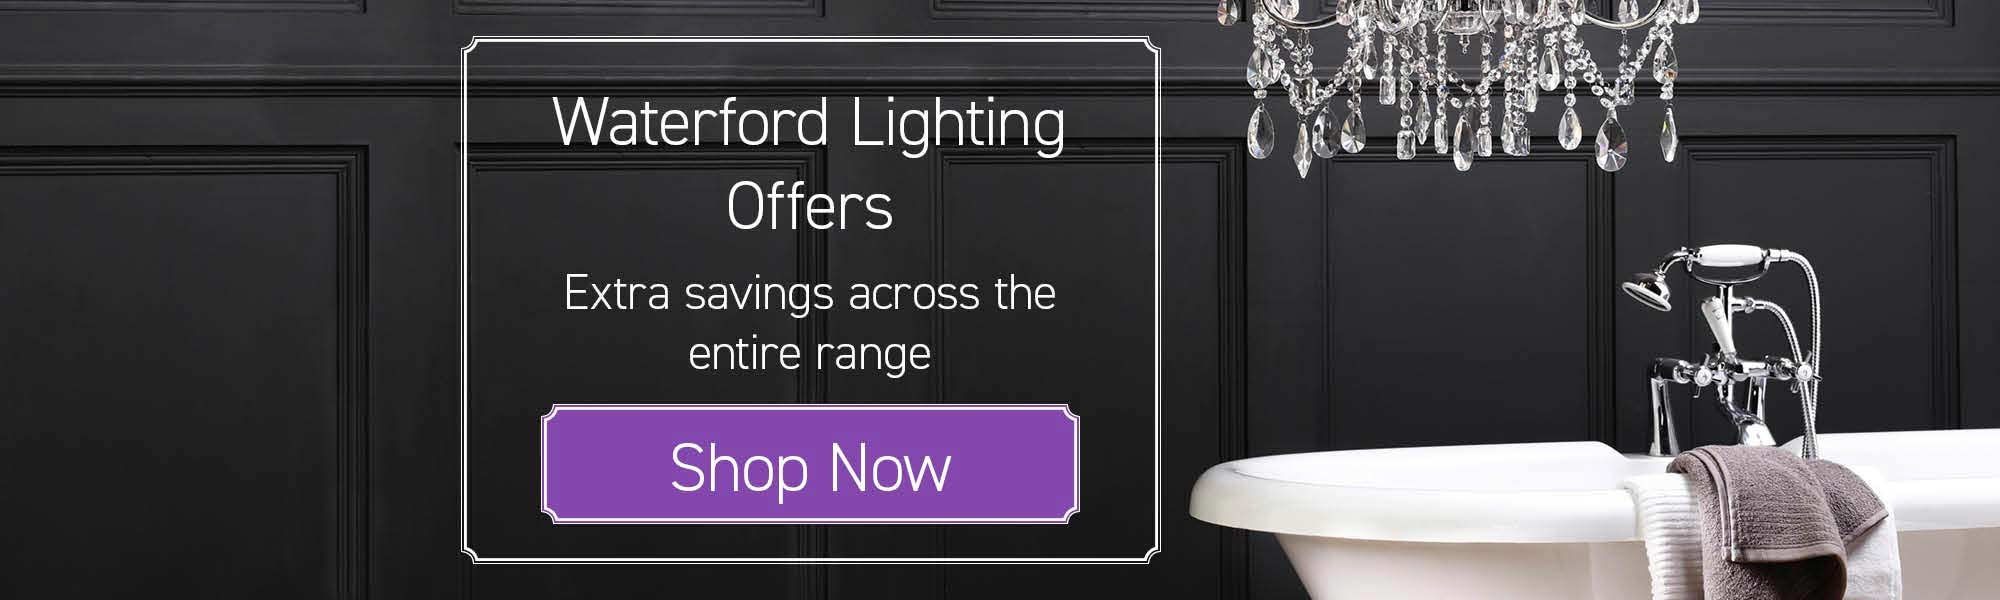 Waterford Lighting Offers. Extra Savings Across the Entire Range